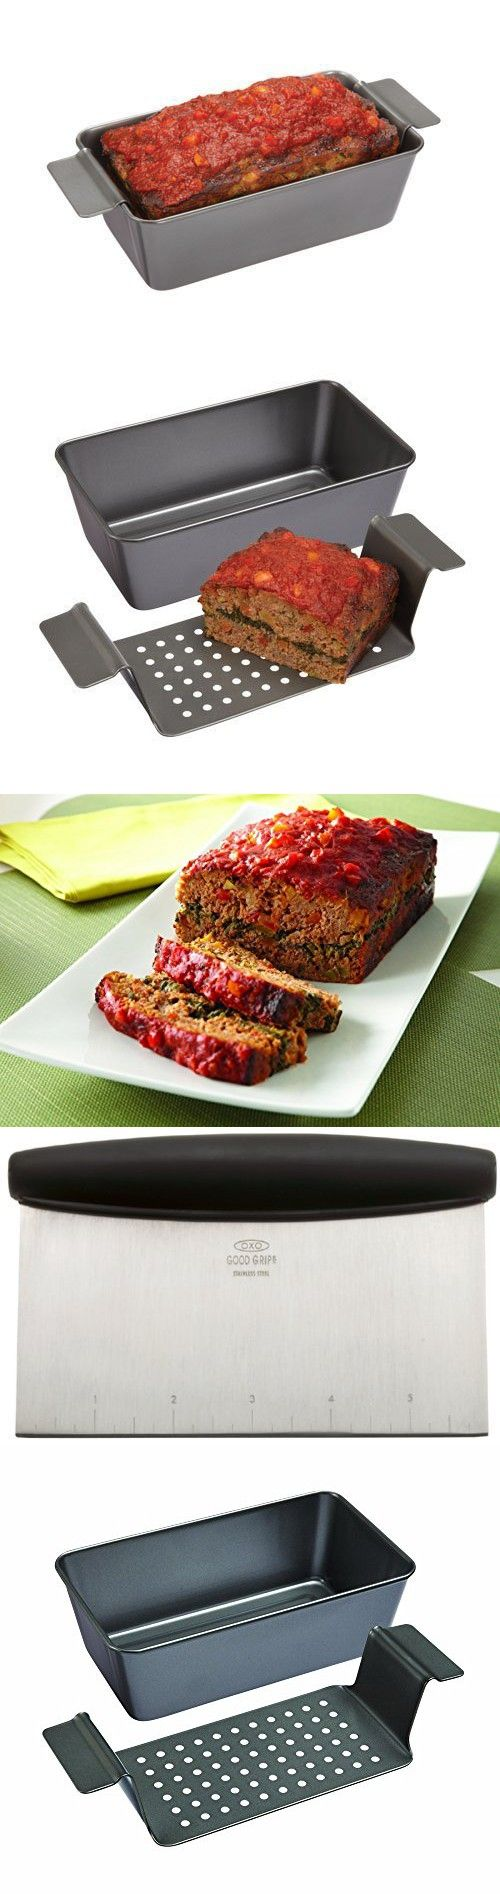 Premium Heavy Duty Gray Finish Non Stick 2 Piece Meatloaf Pan and a Multi Purpose Scraper